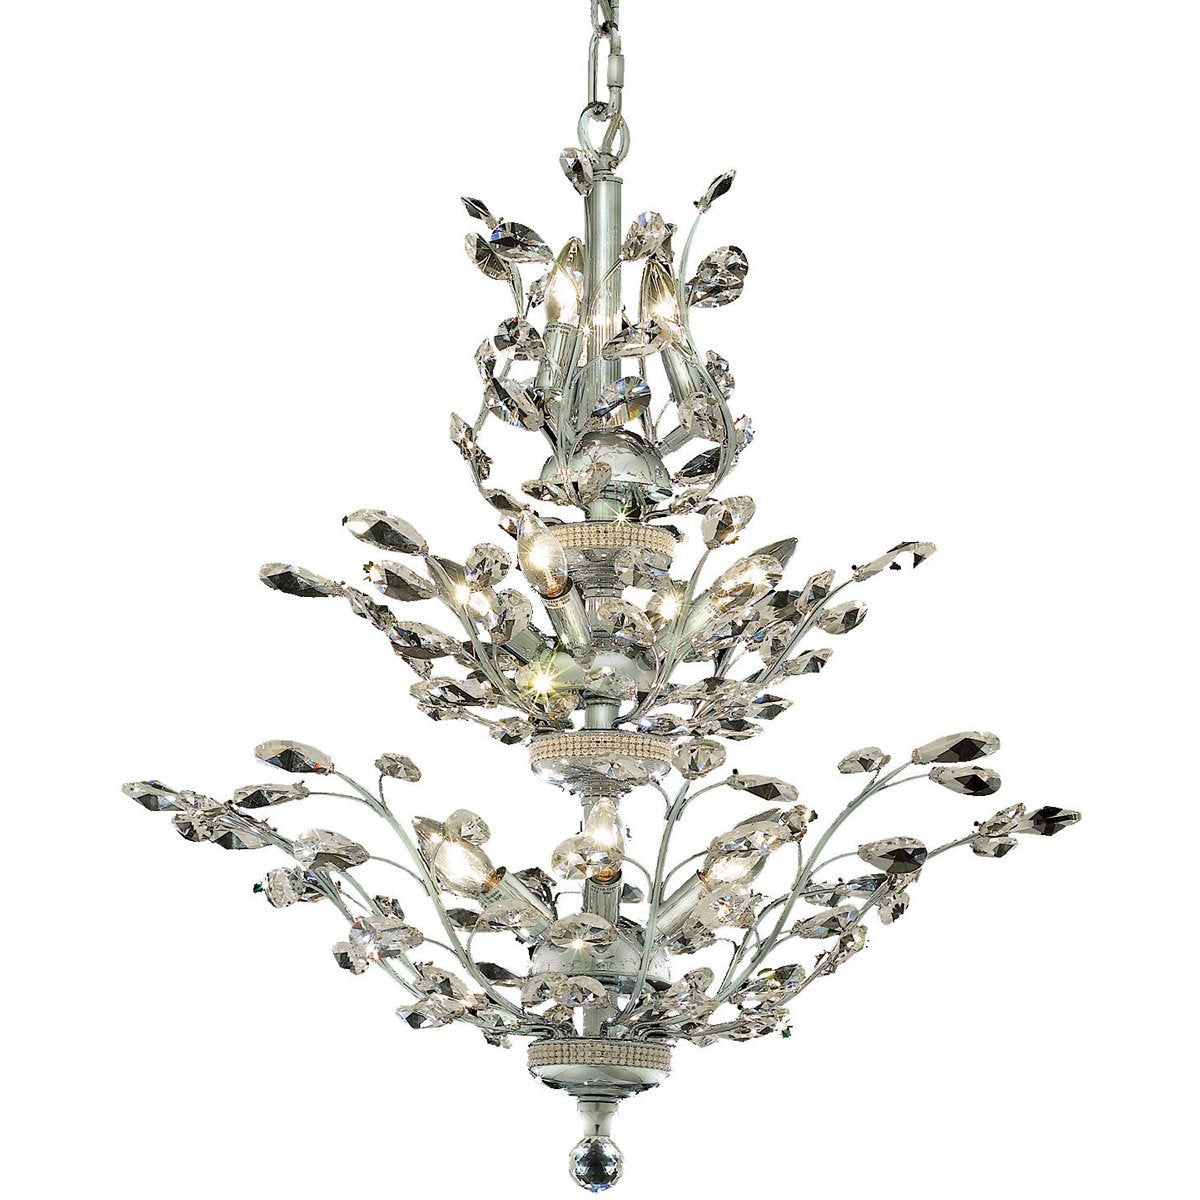 Orchid 27 Crystal Chandelier With 13 Lights - Chrome Finish And Royal Cut Crystal Chandelier